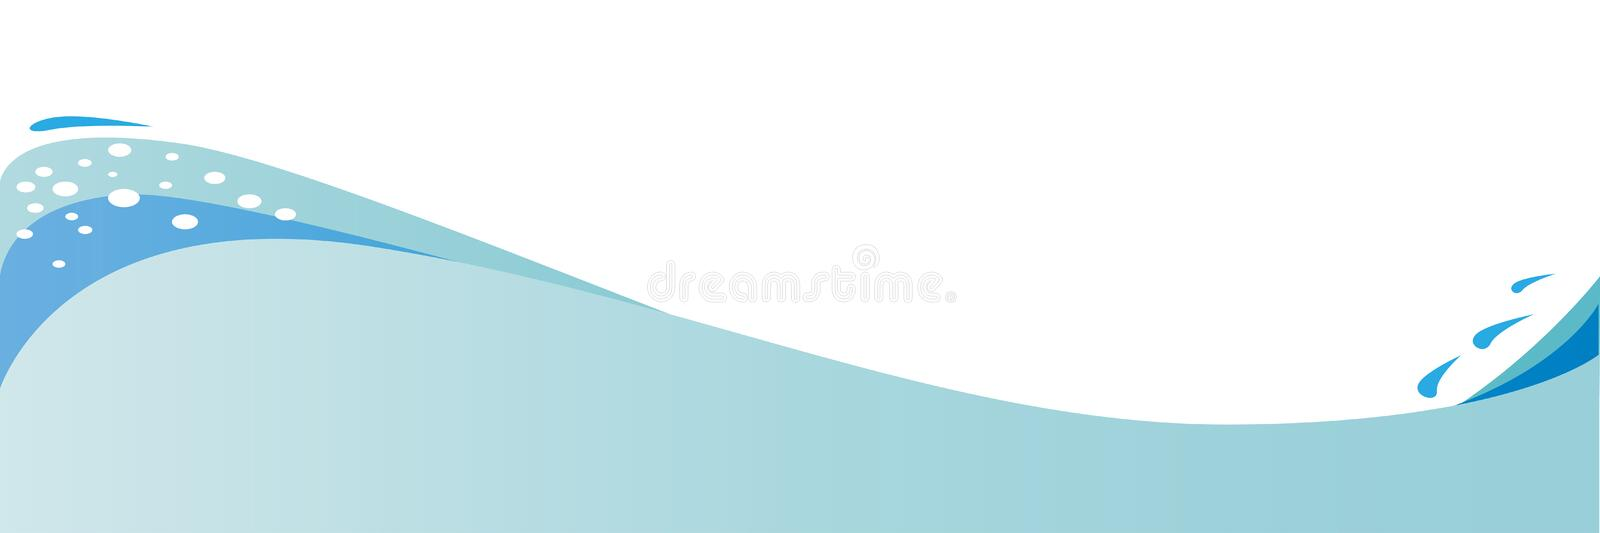 Wave Form Page. An abstract wave with foam and water droplets stock illustration